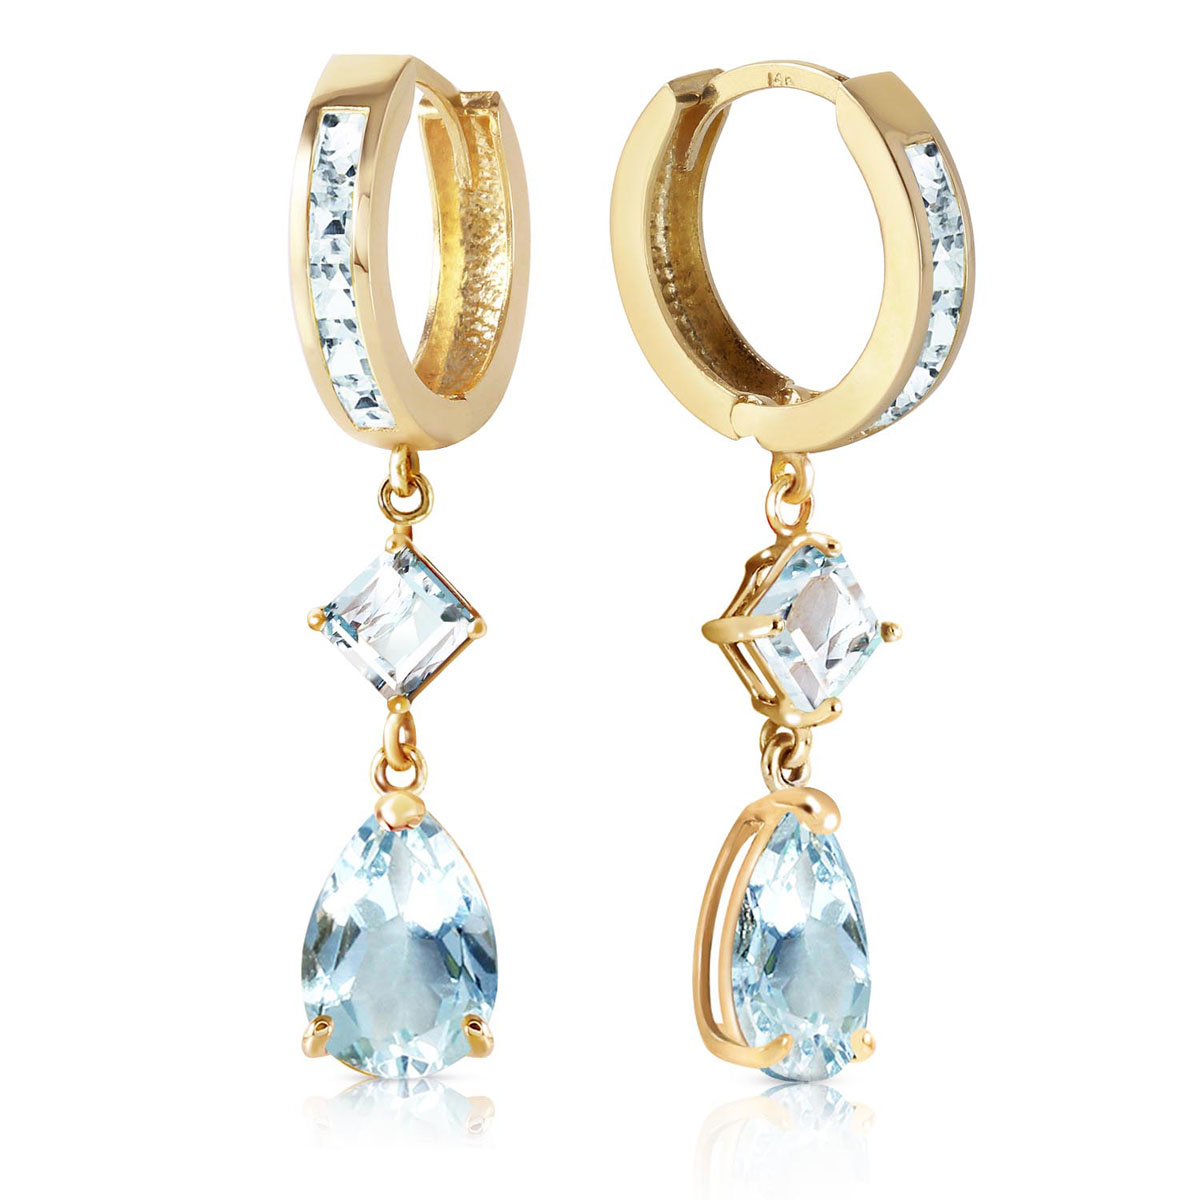 Aquamarine Droplet Huggie Earrings 5.62 ctw in 9ct Gold